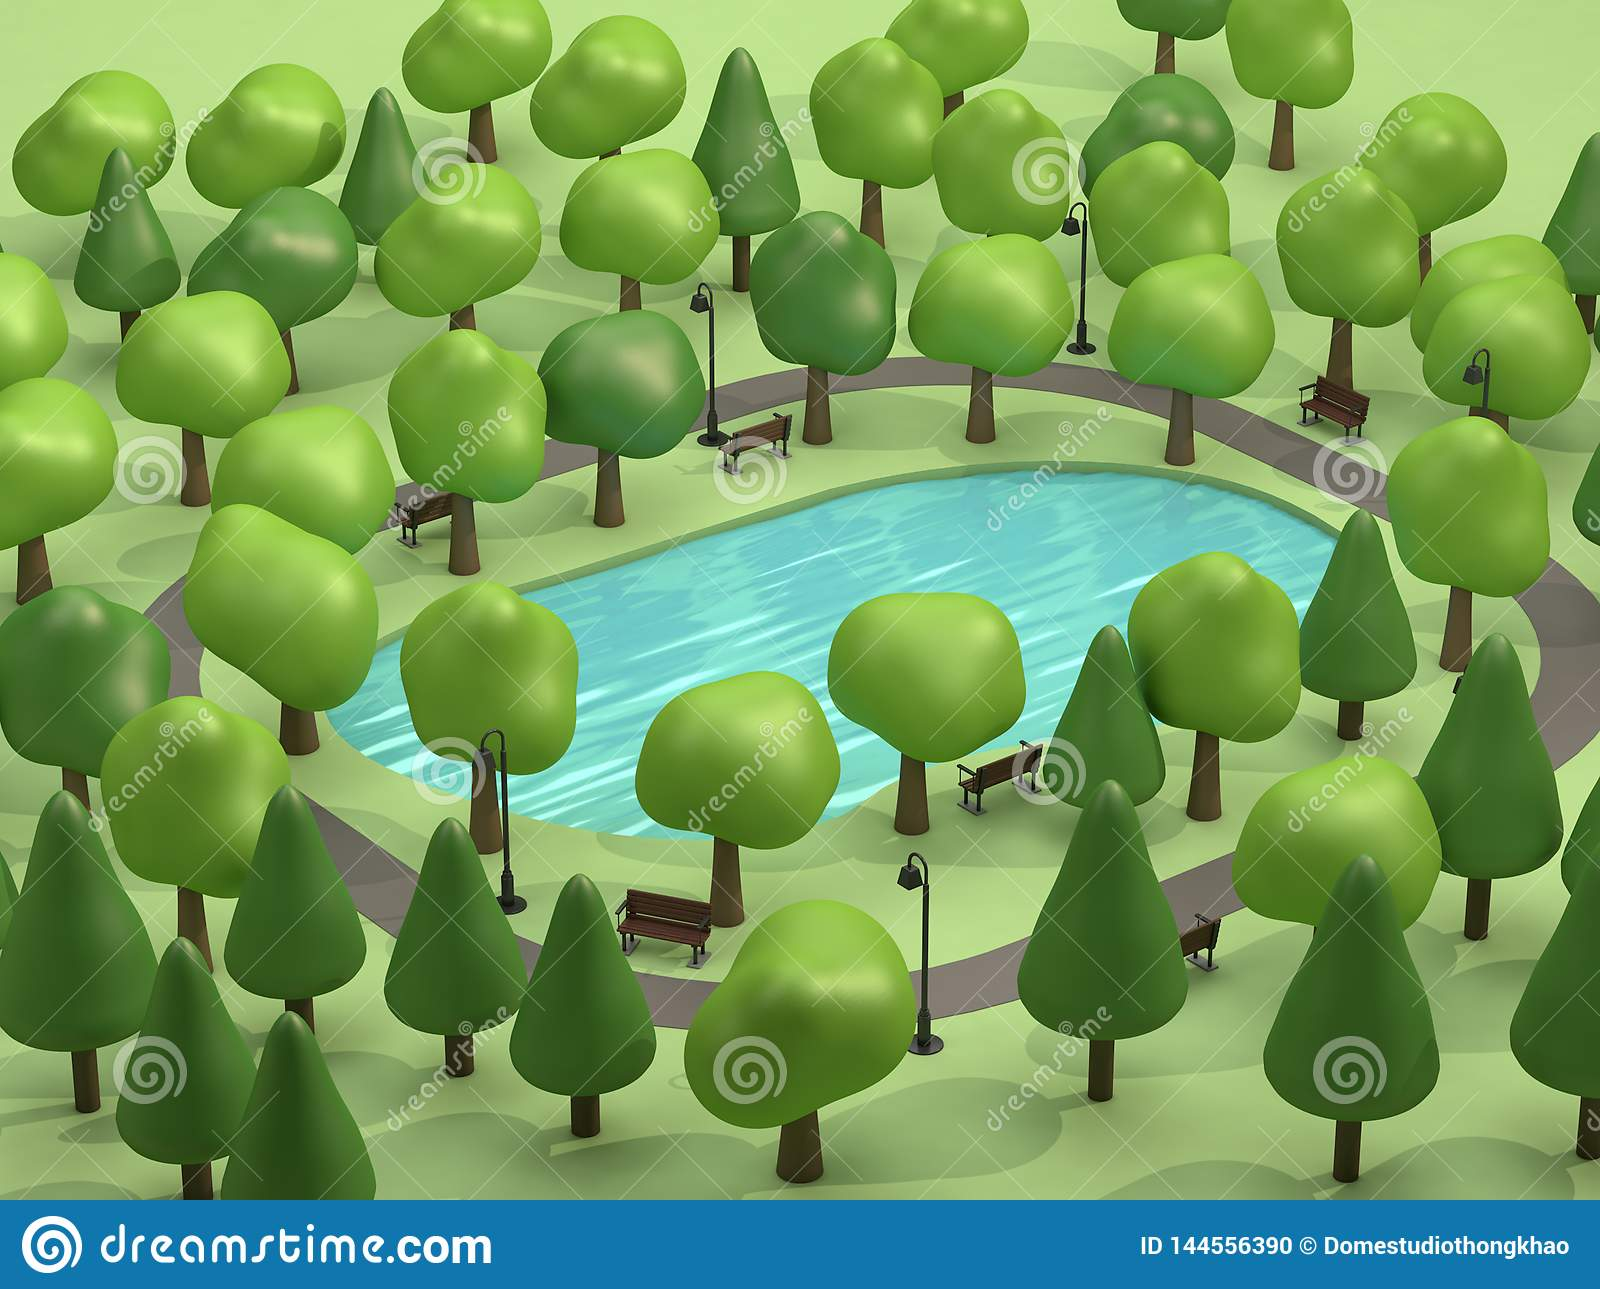 top view pond in green parks and many trees low poly 3d render cartoon style